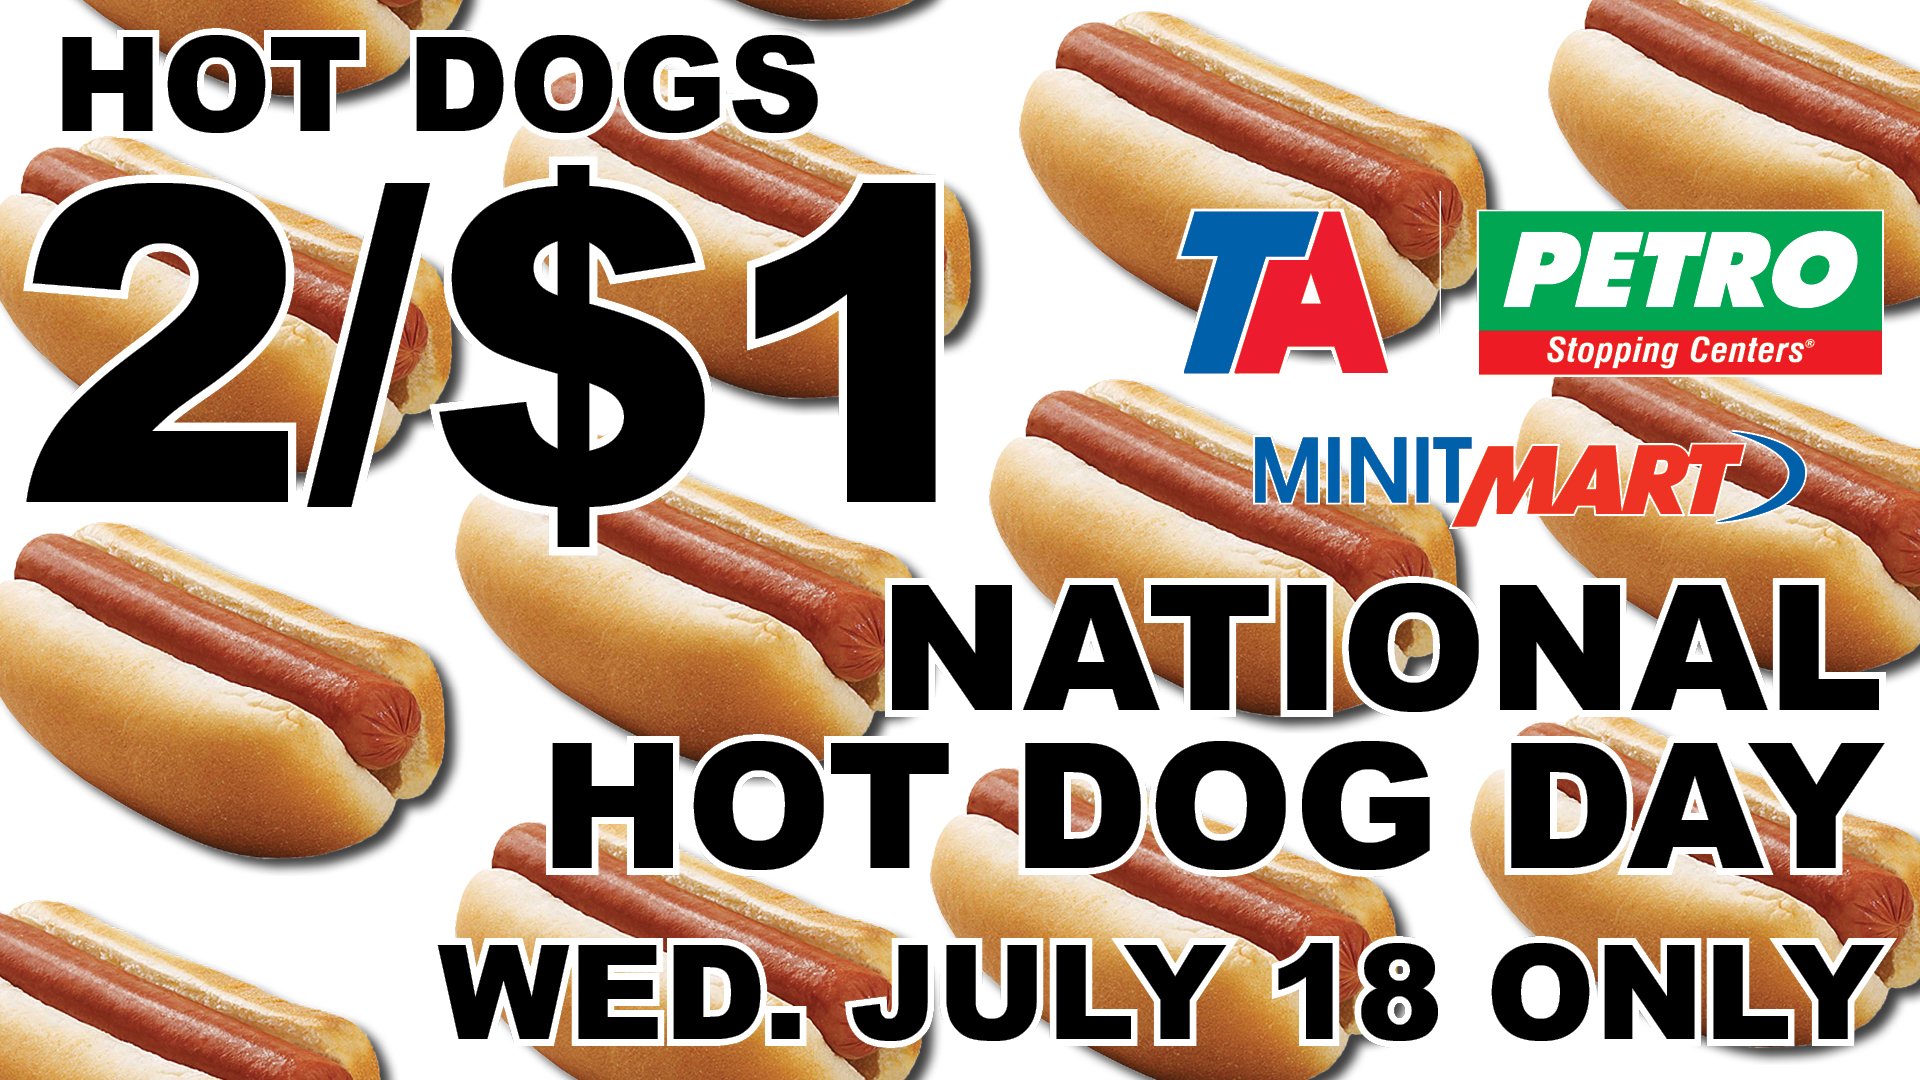 National Hot Dog Day Is Quickly Approaching On Wednesday July 18 Obviously The Question On Everyones Minds Is Is This Sandwich Day Or Not